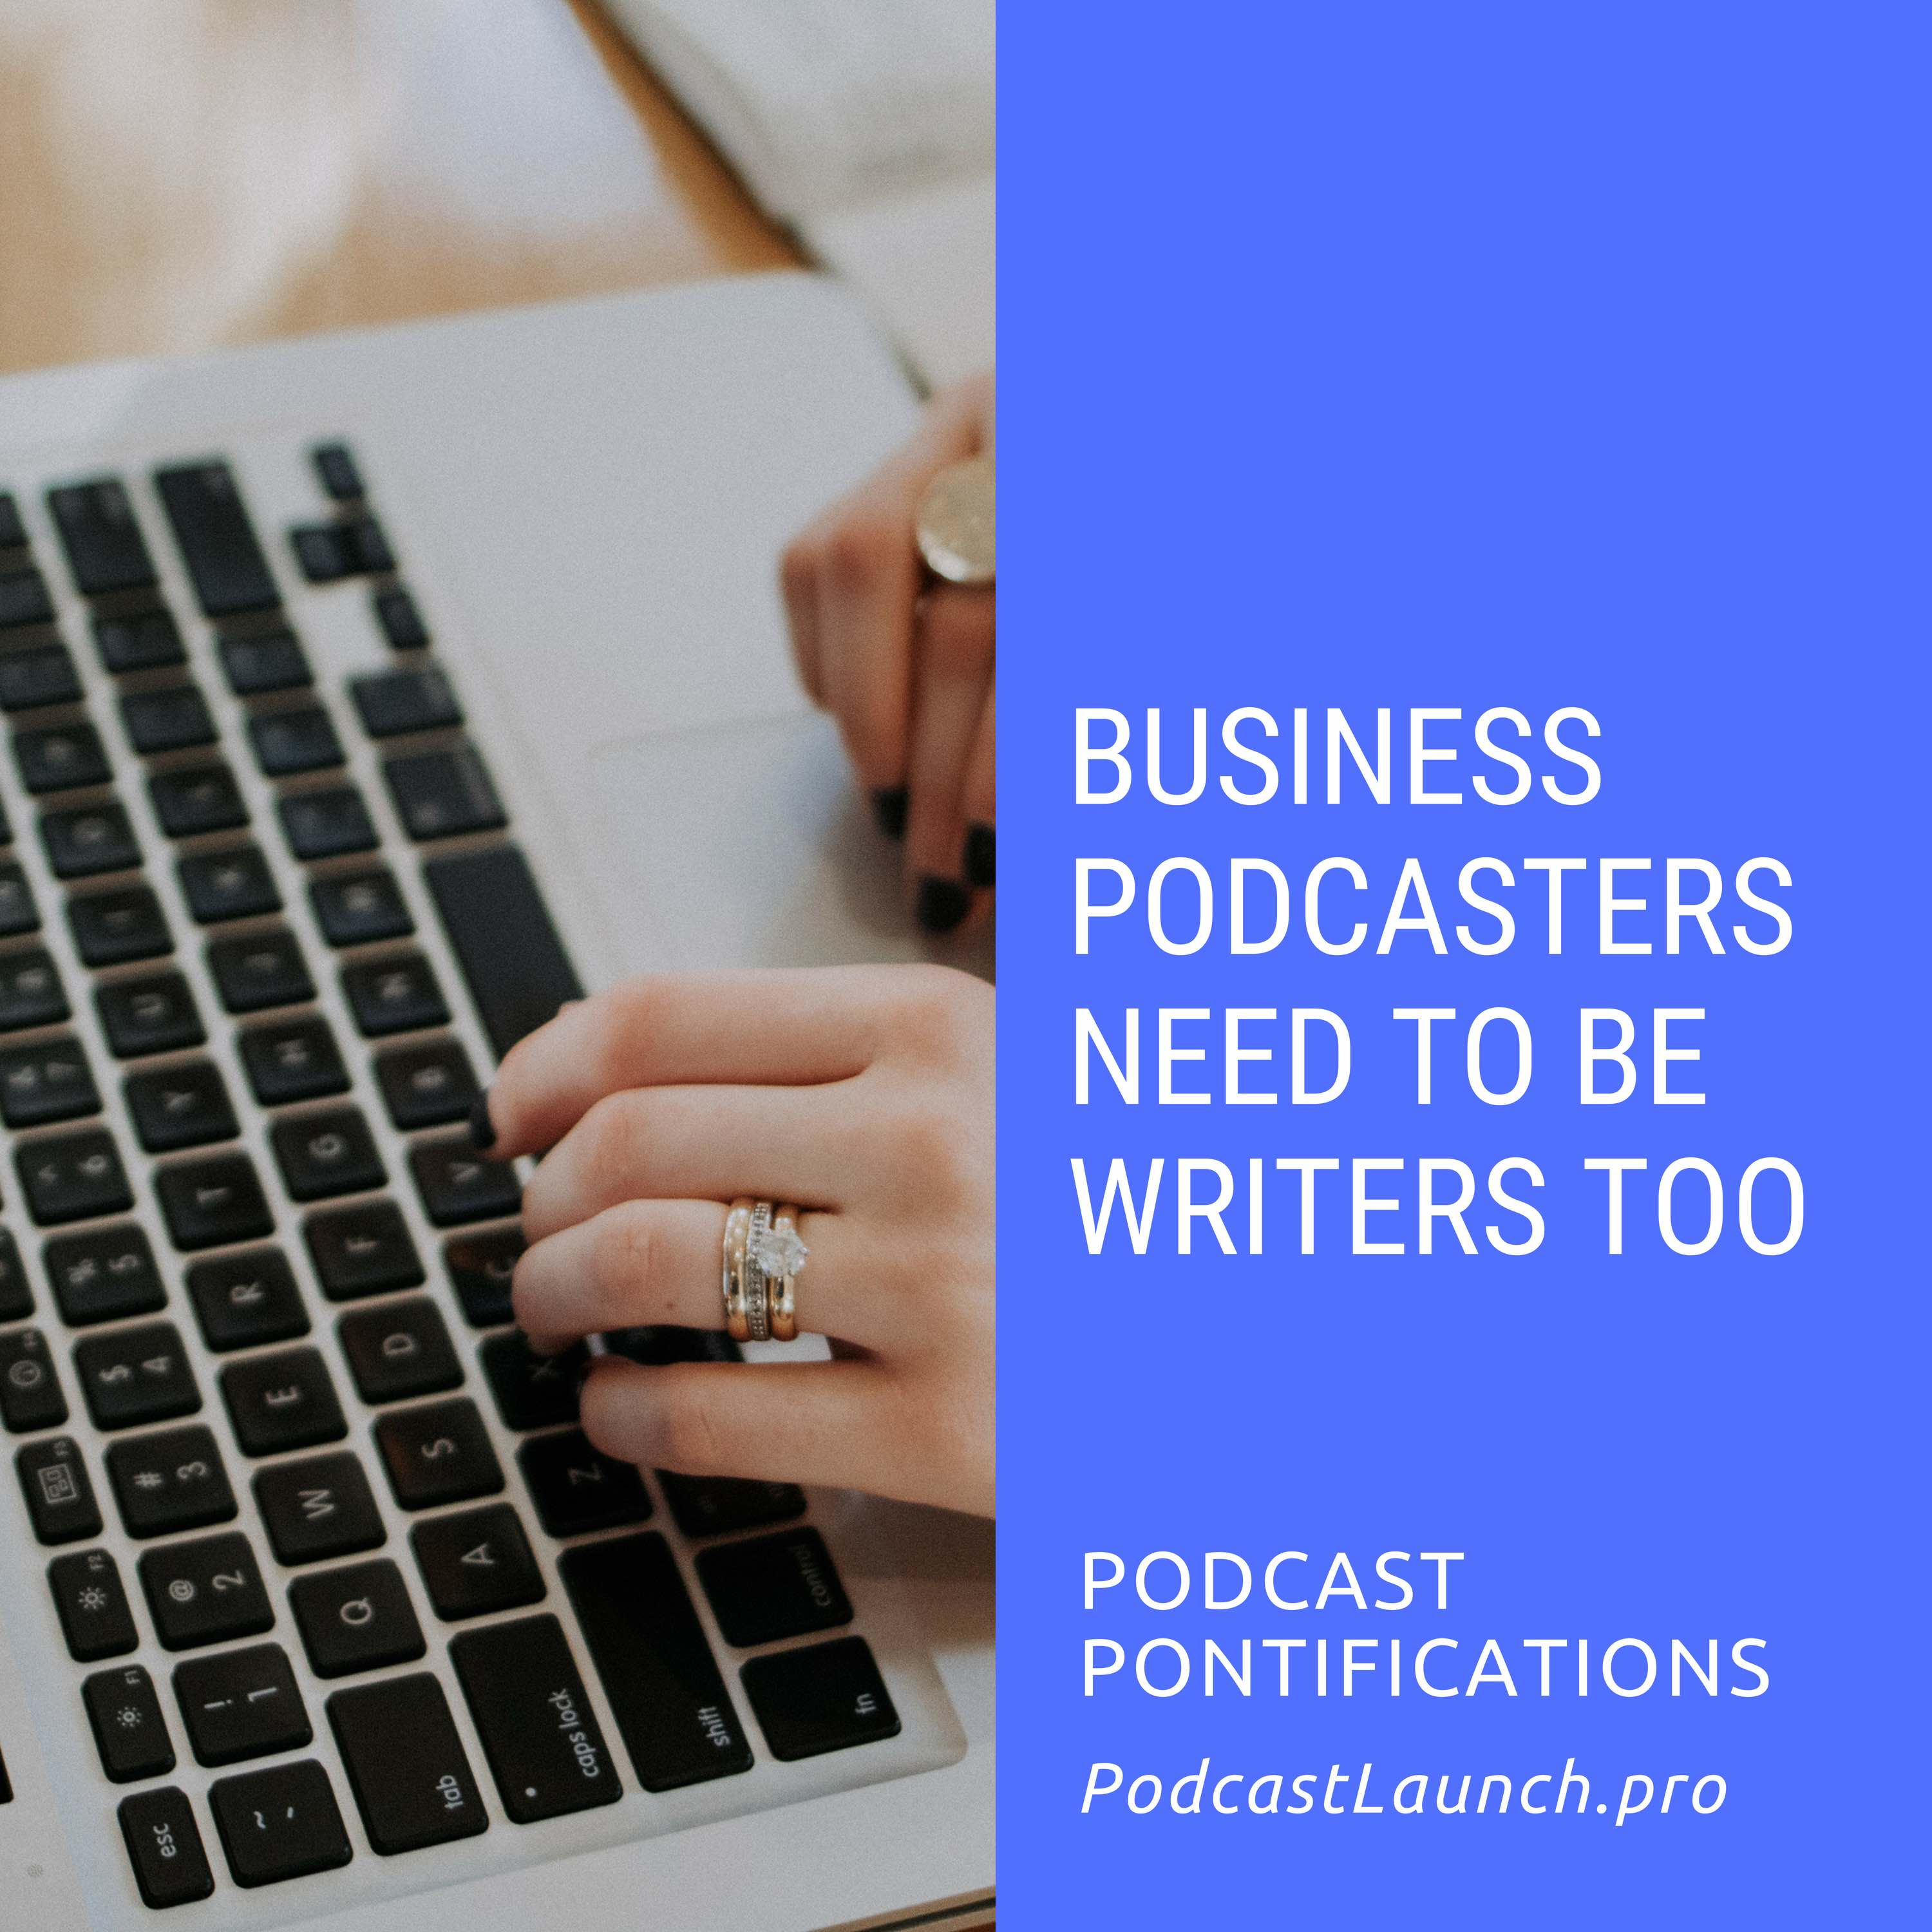 Business Podcasters Need To Be Writers Too